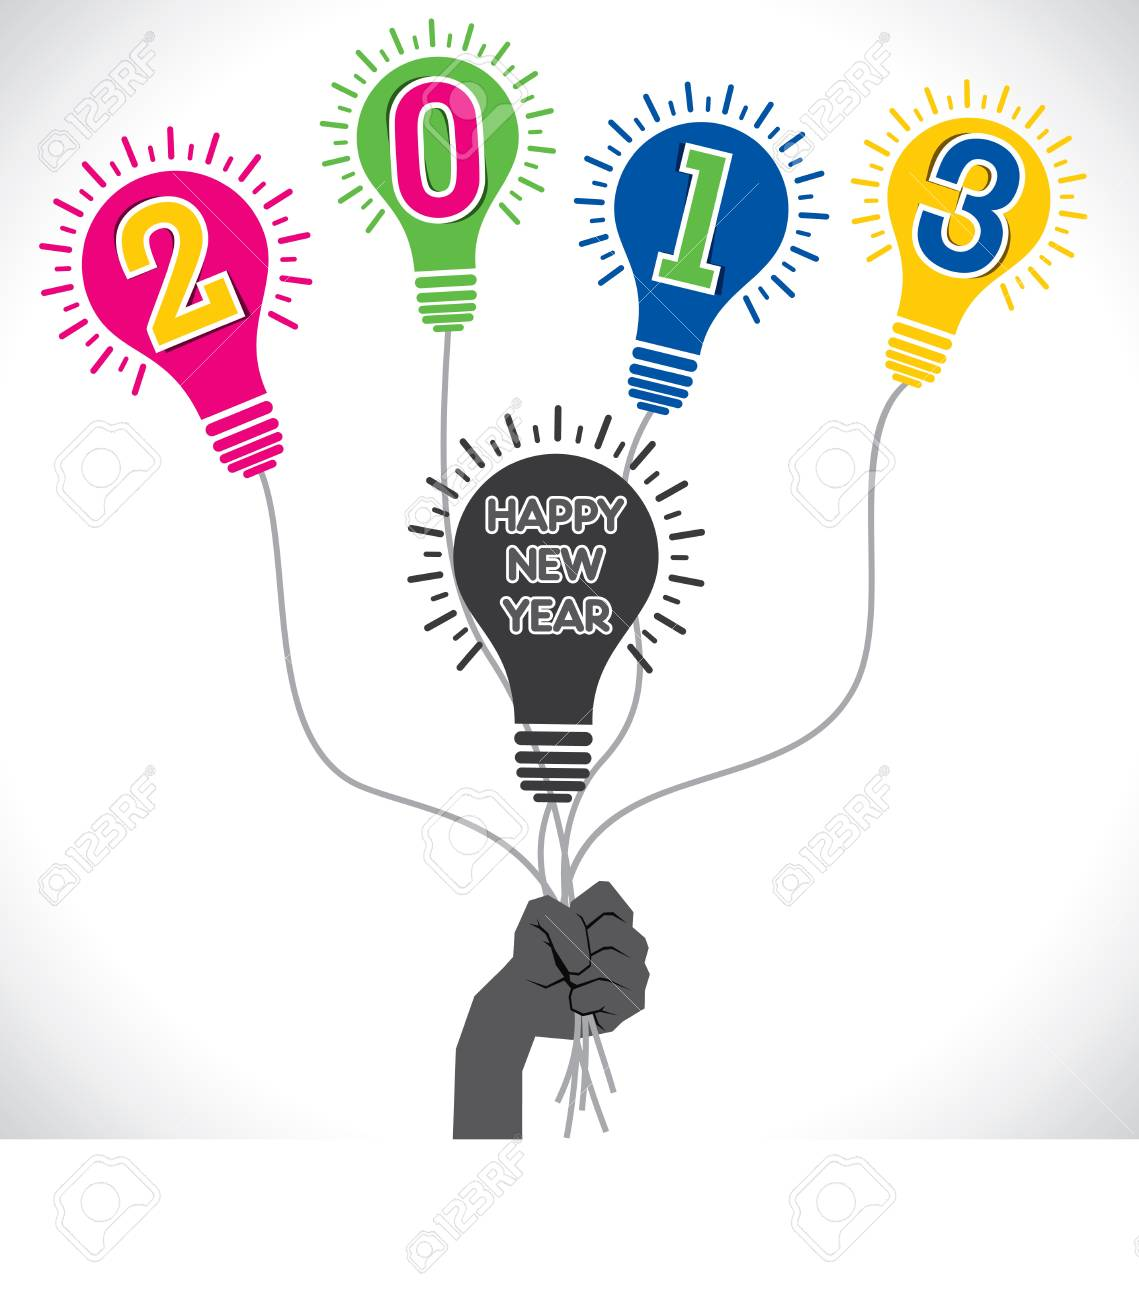 colorful happy new year 2013 stock vector Stock Vector - 16845739